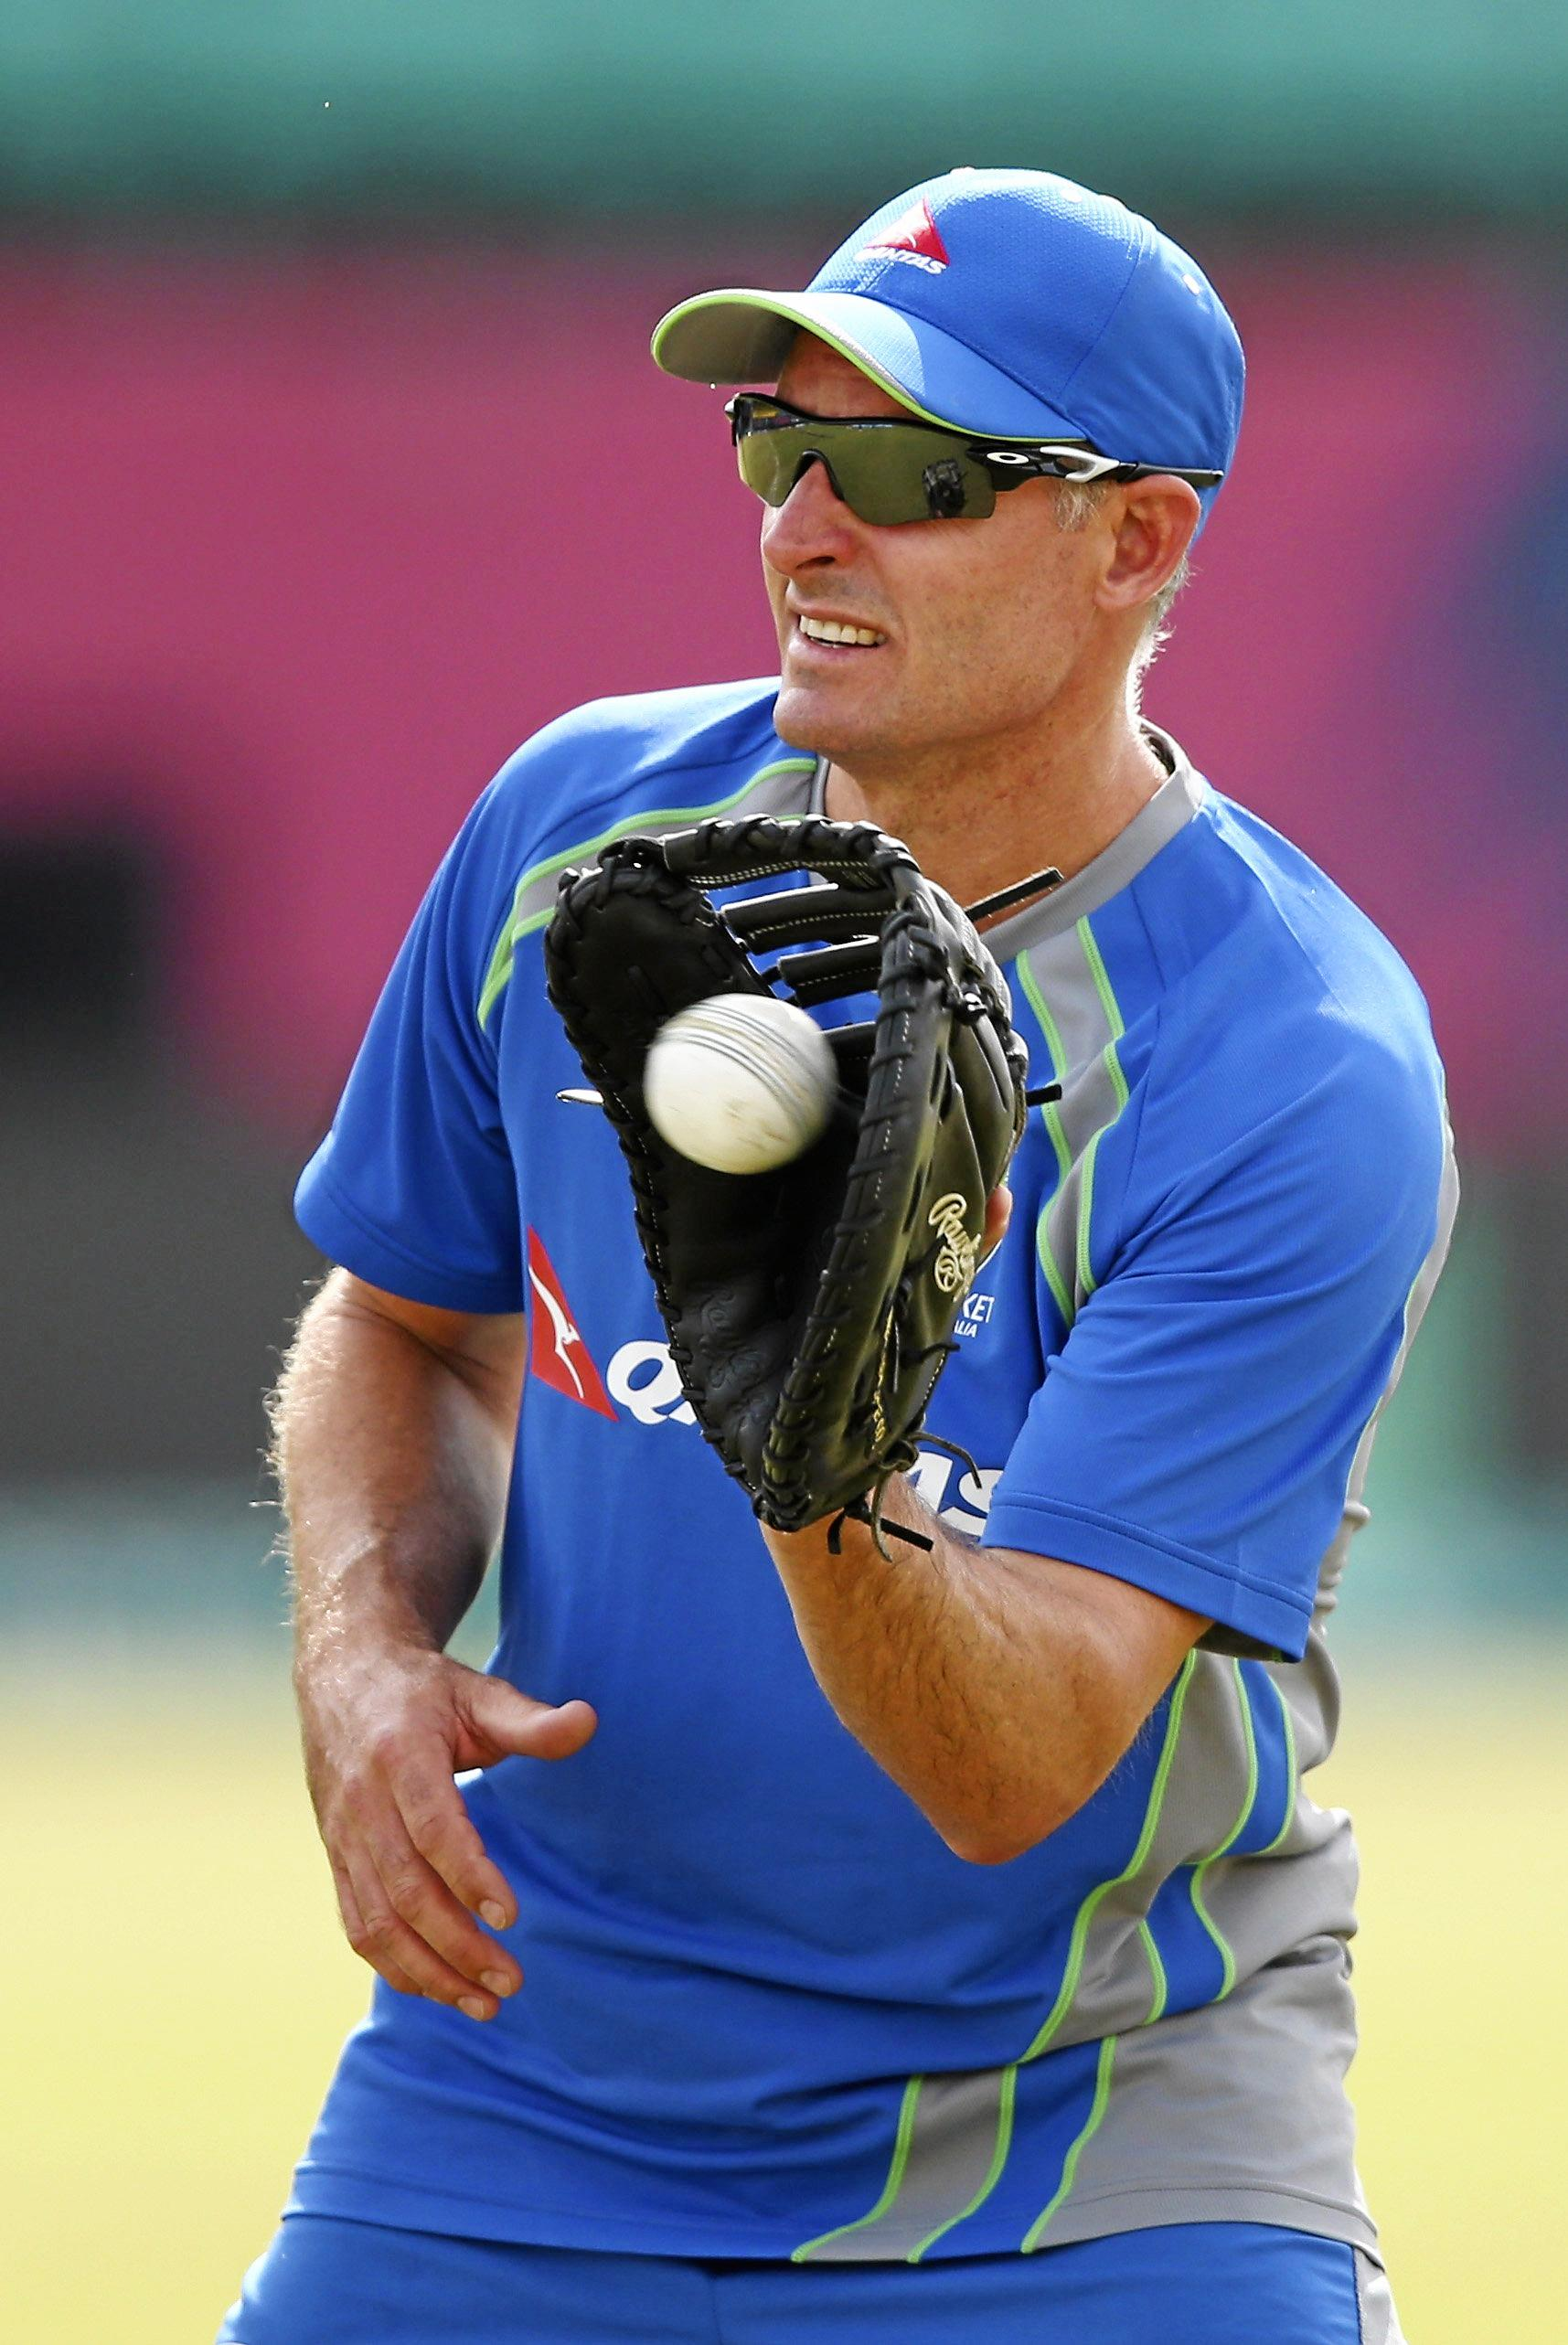 DHARAMSALA, INDIA - MARCH 16:  Australian Consultant Mike Hussey trains during an Australian nets session ahead of the ICC 2016 Twenty20 World Cup on March 16, 2016 in Dharamsala, India.  (Photo by Ryan Pierse/Getty Images)